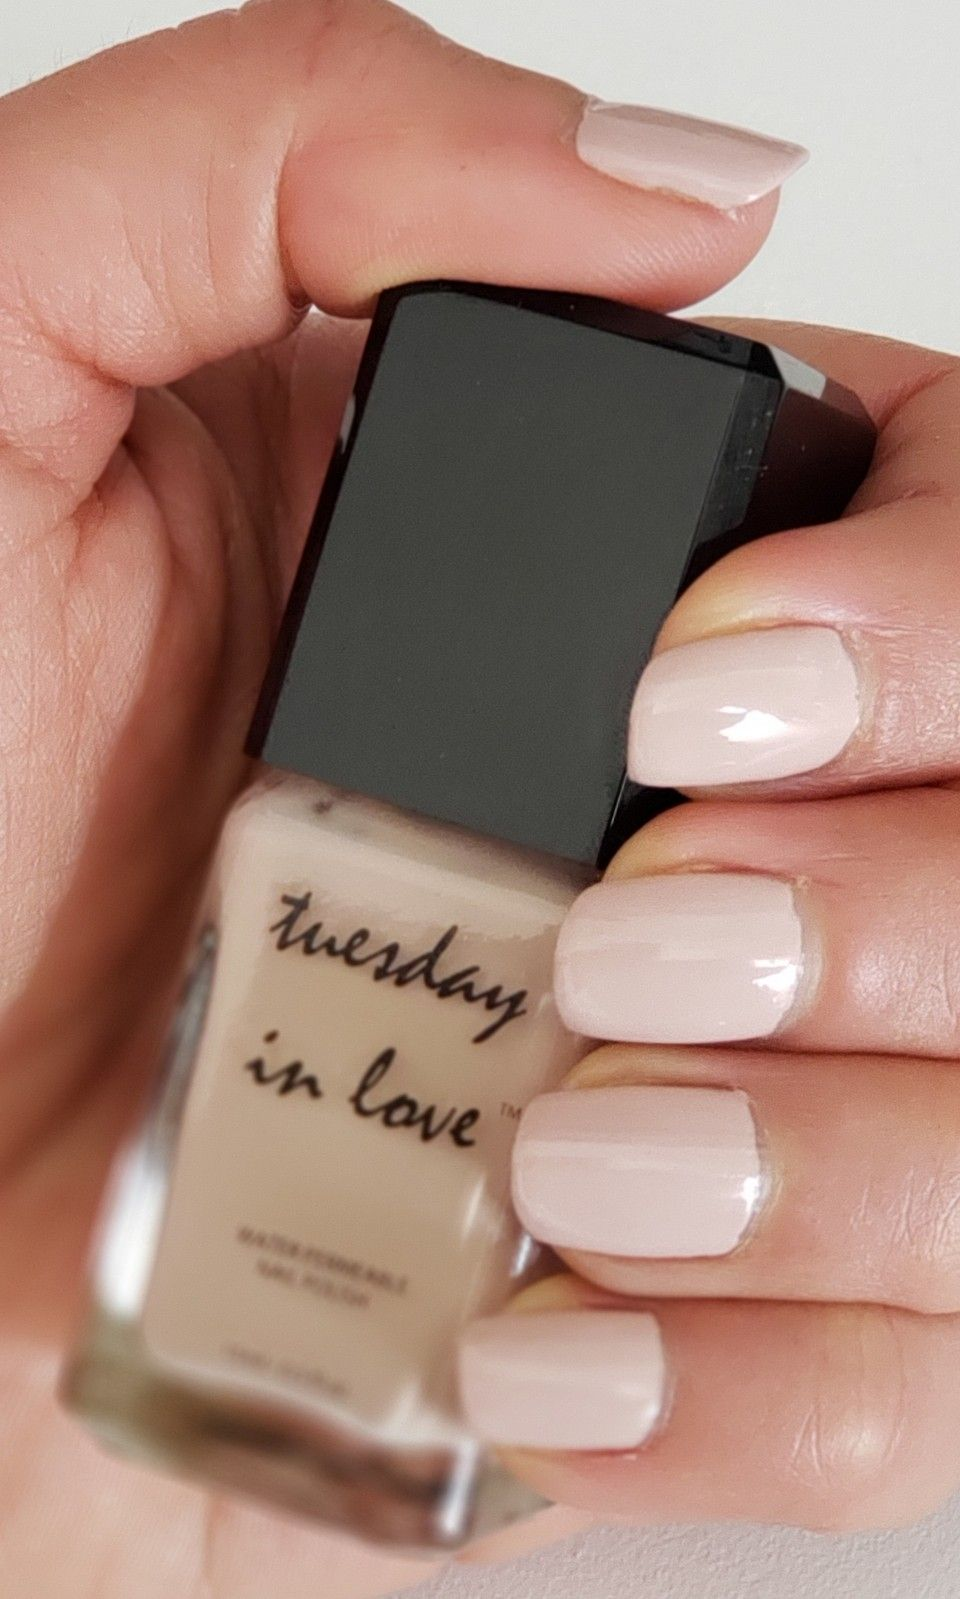 Desert Rose By Tuesday In Love Halal Nail Polish And Cosmetics In 2020 Nail Polish Halal Nail Polish Pretty Acrylic Nails